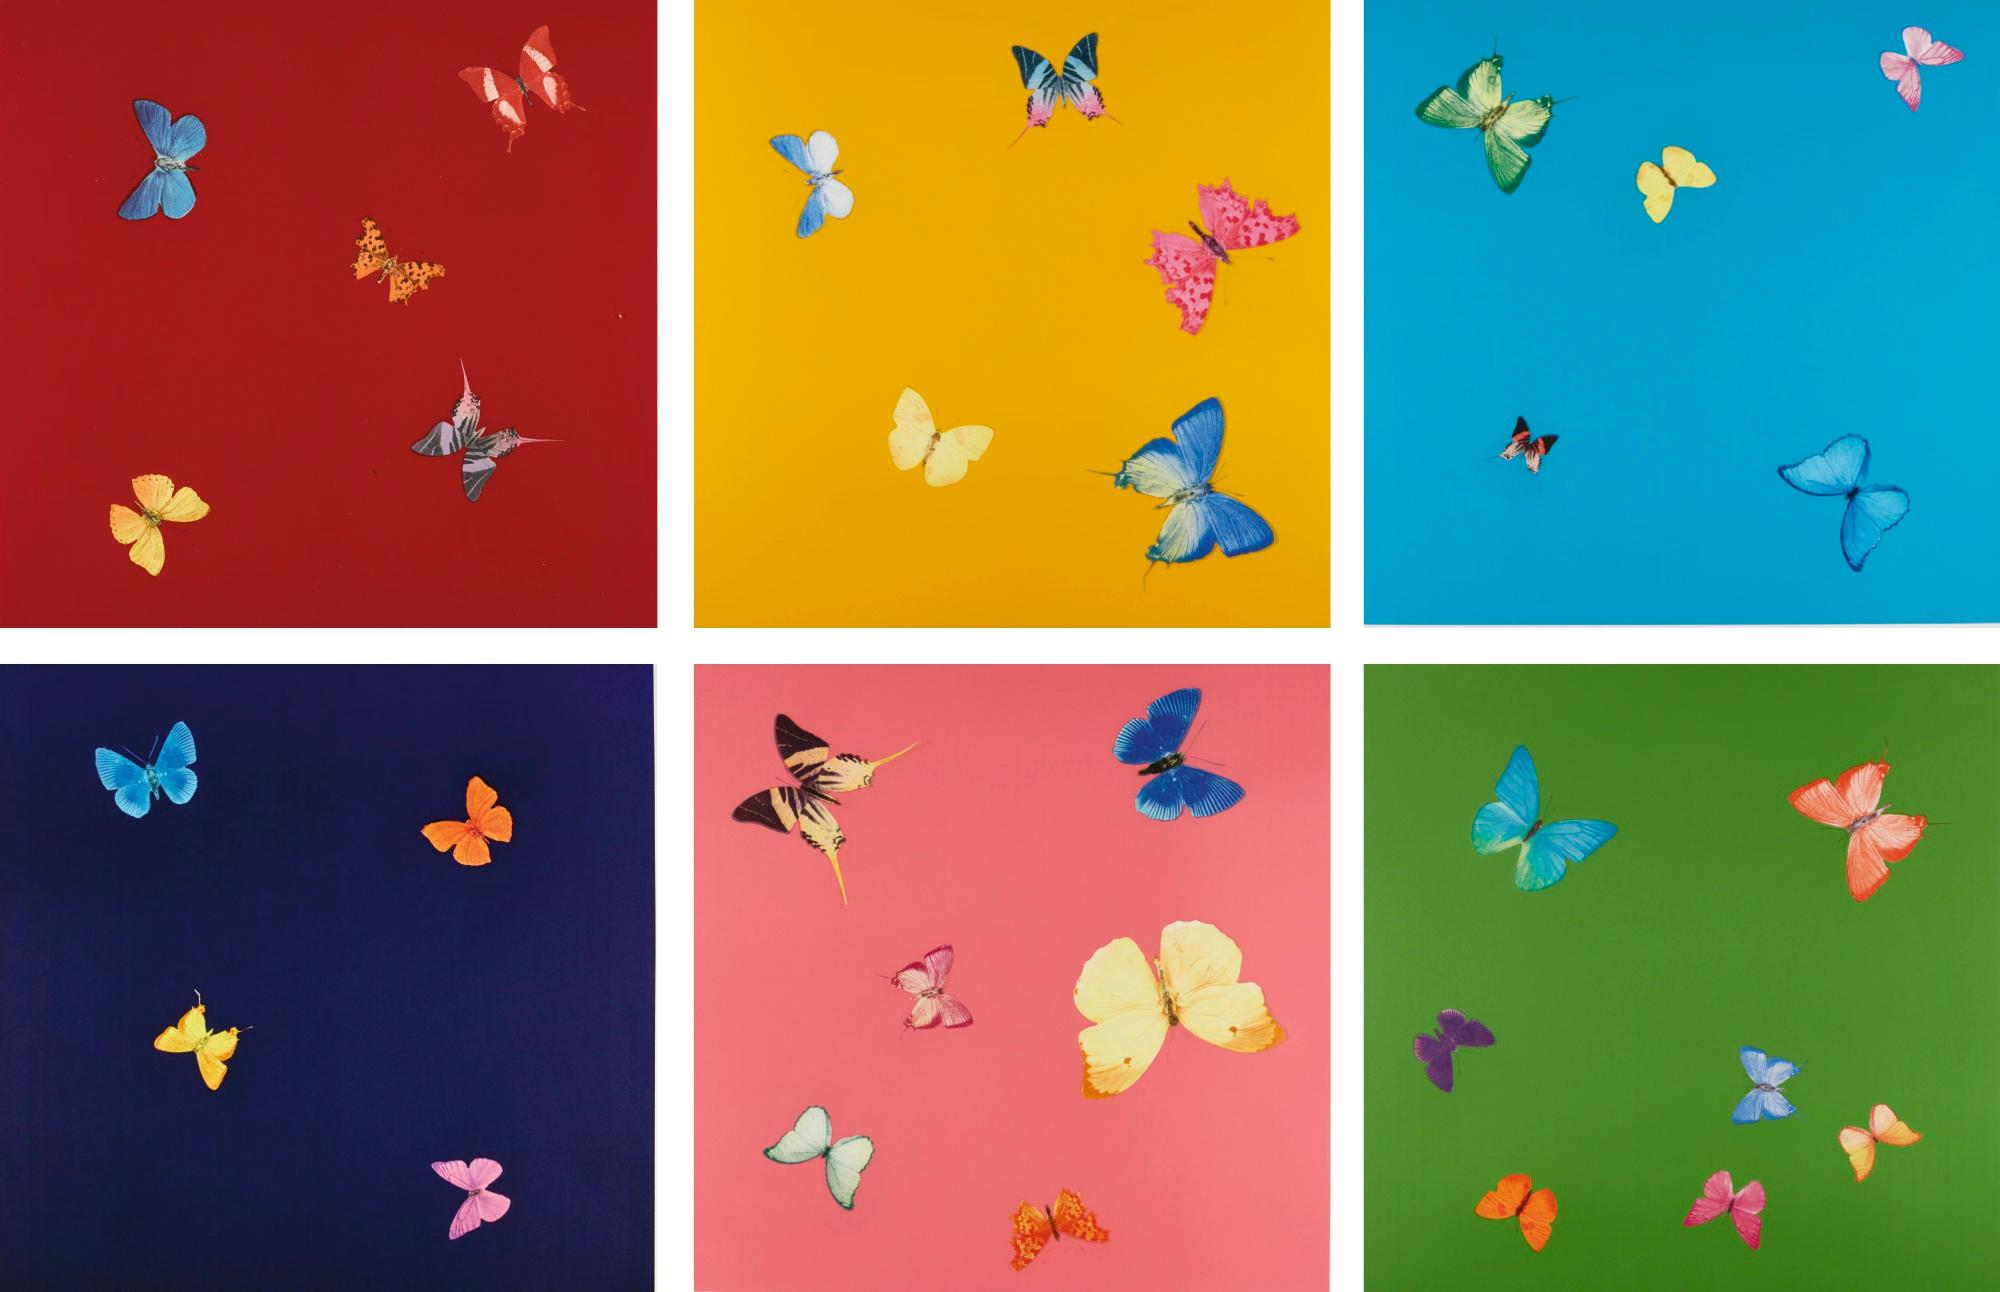 Love Poems by Damien Hirst